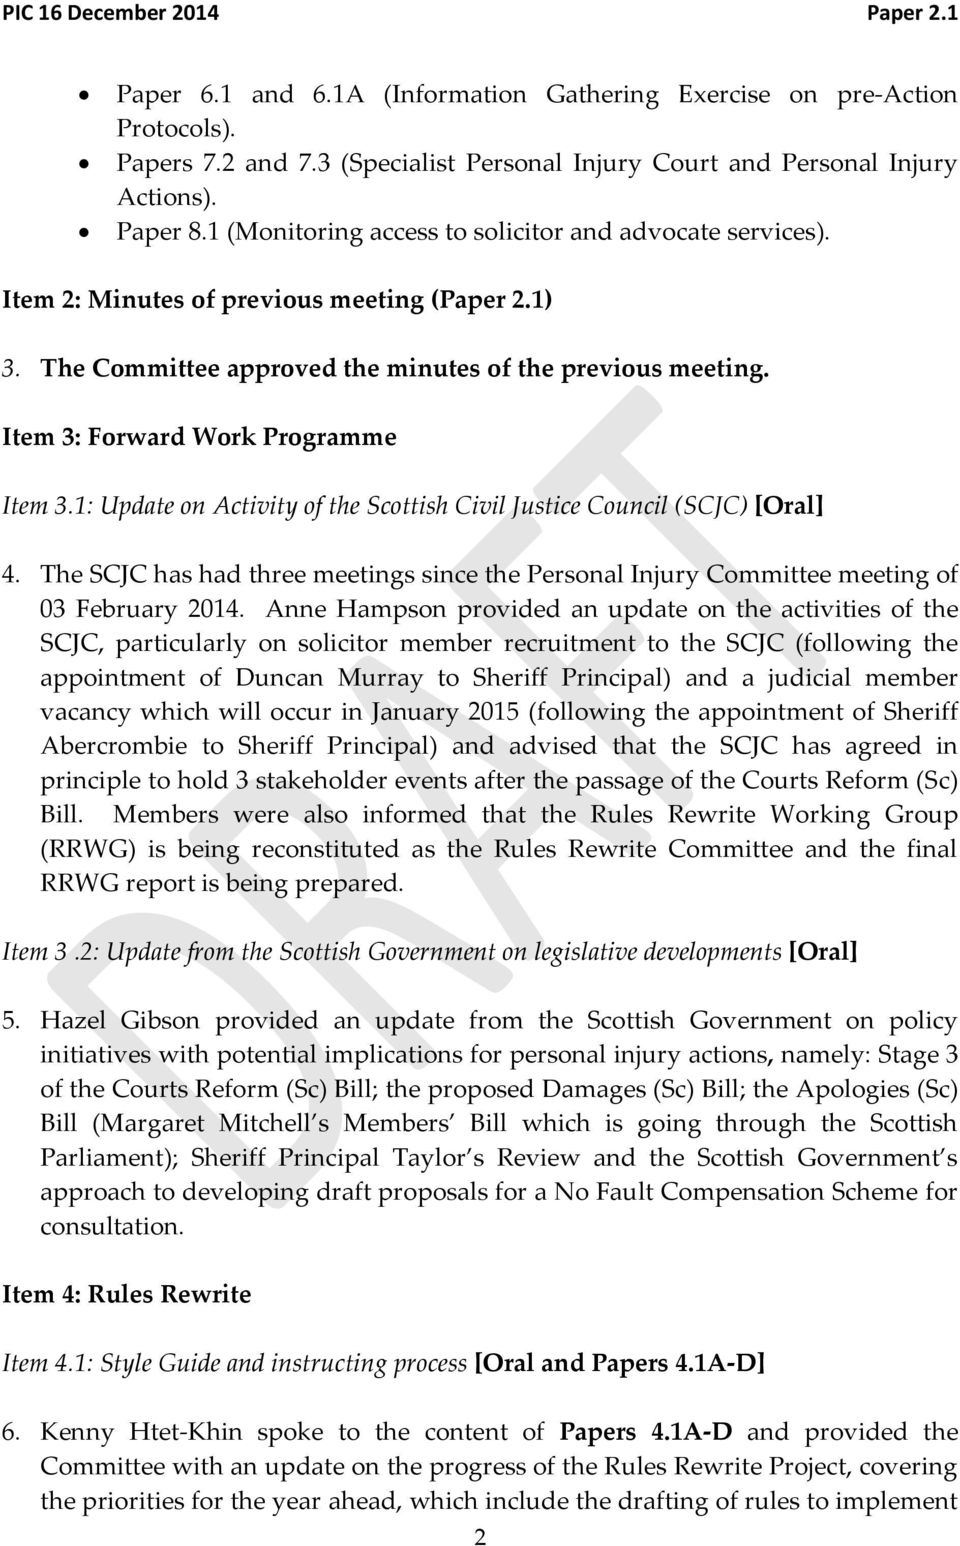 Item 3: Forward Work Programme Item 3.1: Update on Activity of the Scottish Civil Justice Council (SCJC) [Oral] 4.